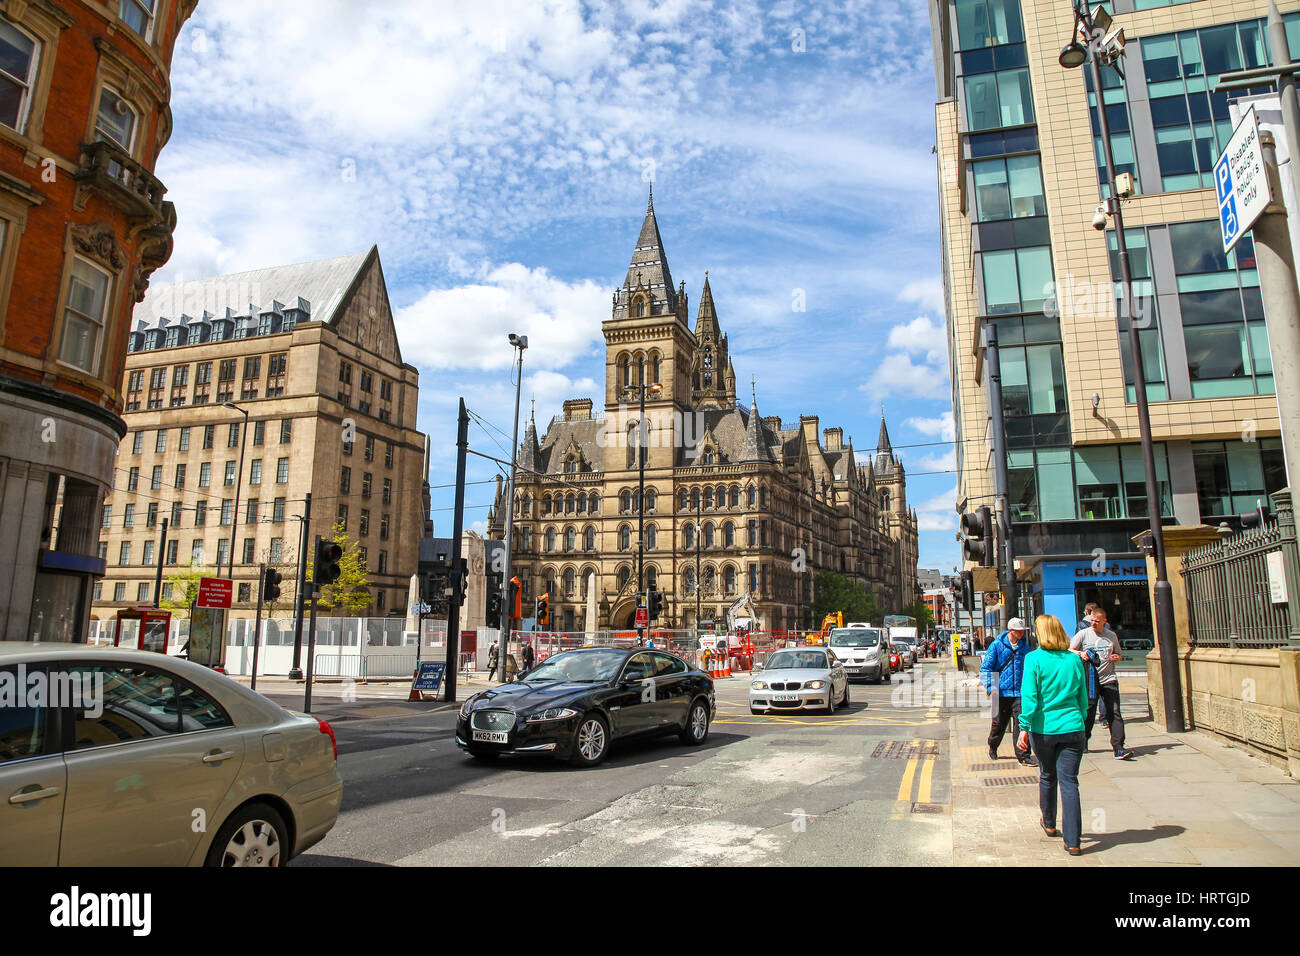 Manchester Town Hall and Extension Manchester city centre Manchester England UK - Stock Image